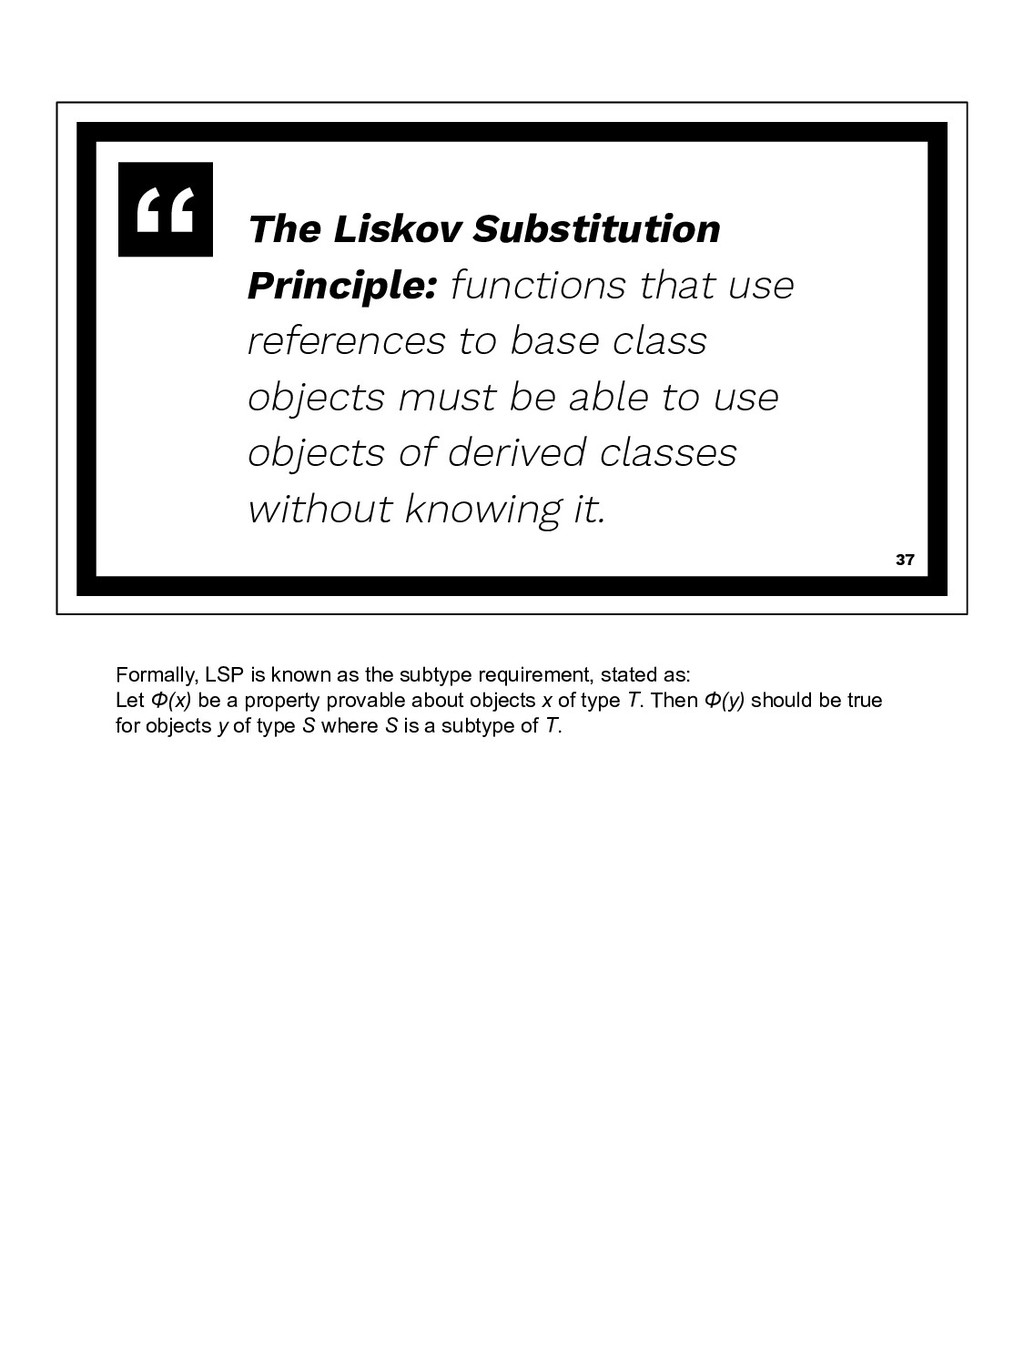 The Liskov Substitution Principle: functions th...